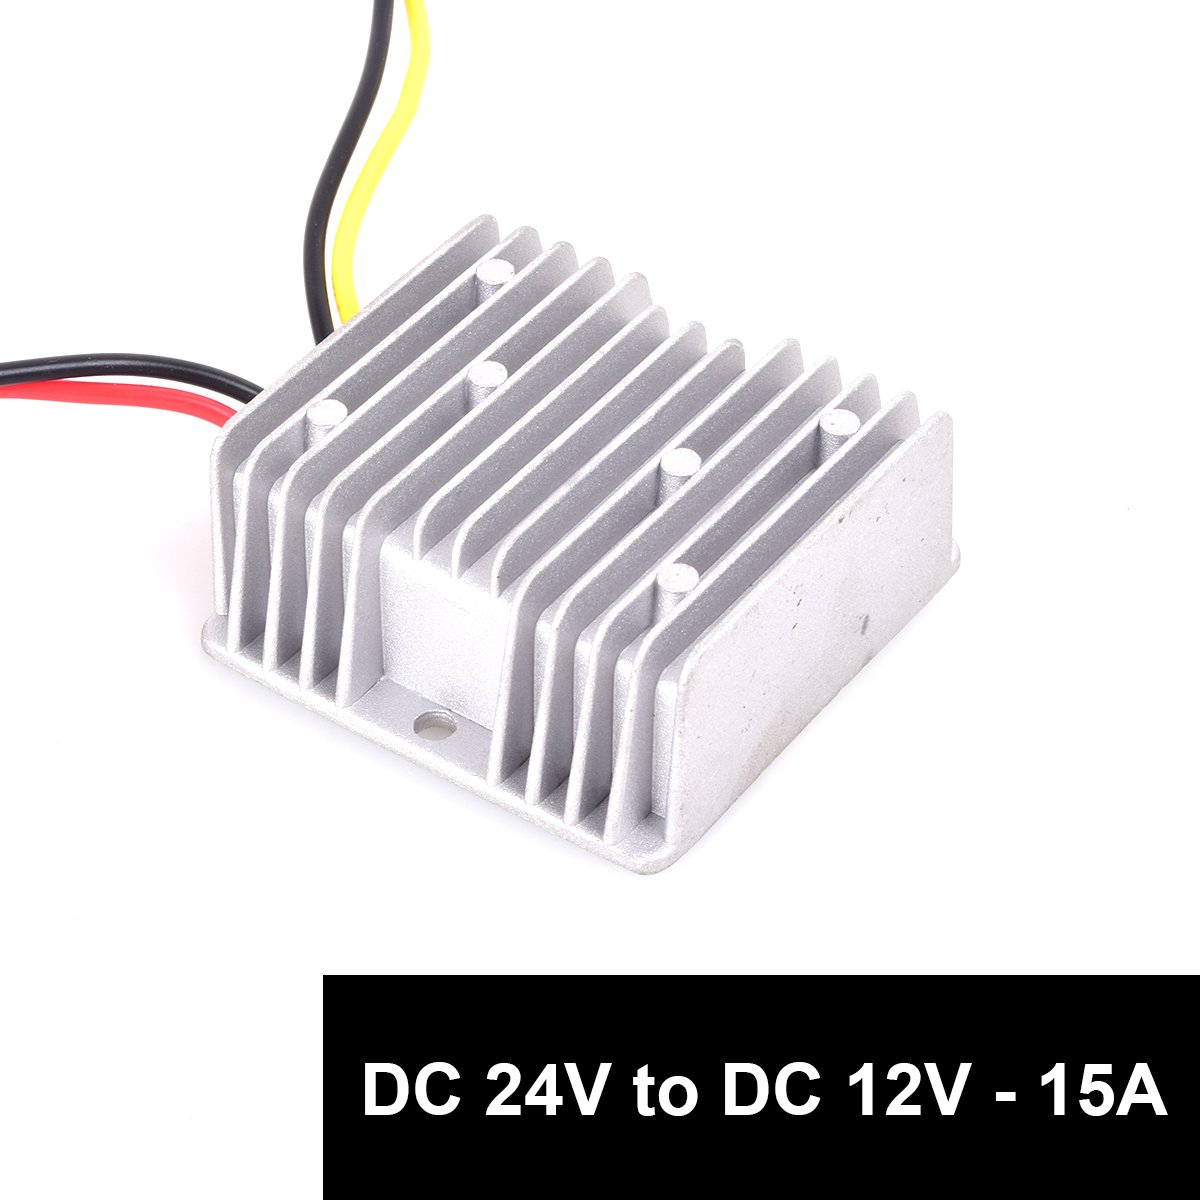 DC 24v to DC 12v Step Down 15A 180W Truck Car Power Supply Adapter Converter Reducer Regulator for Auto Car Truck Vehicle Boat Solar System etc.(DC15-40V Inputs)